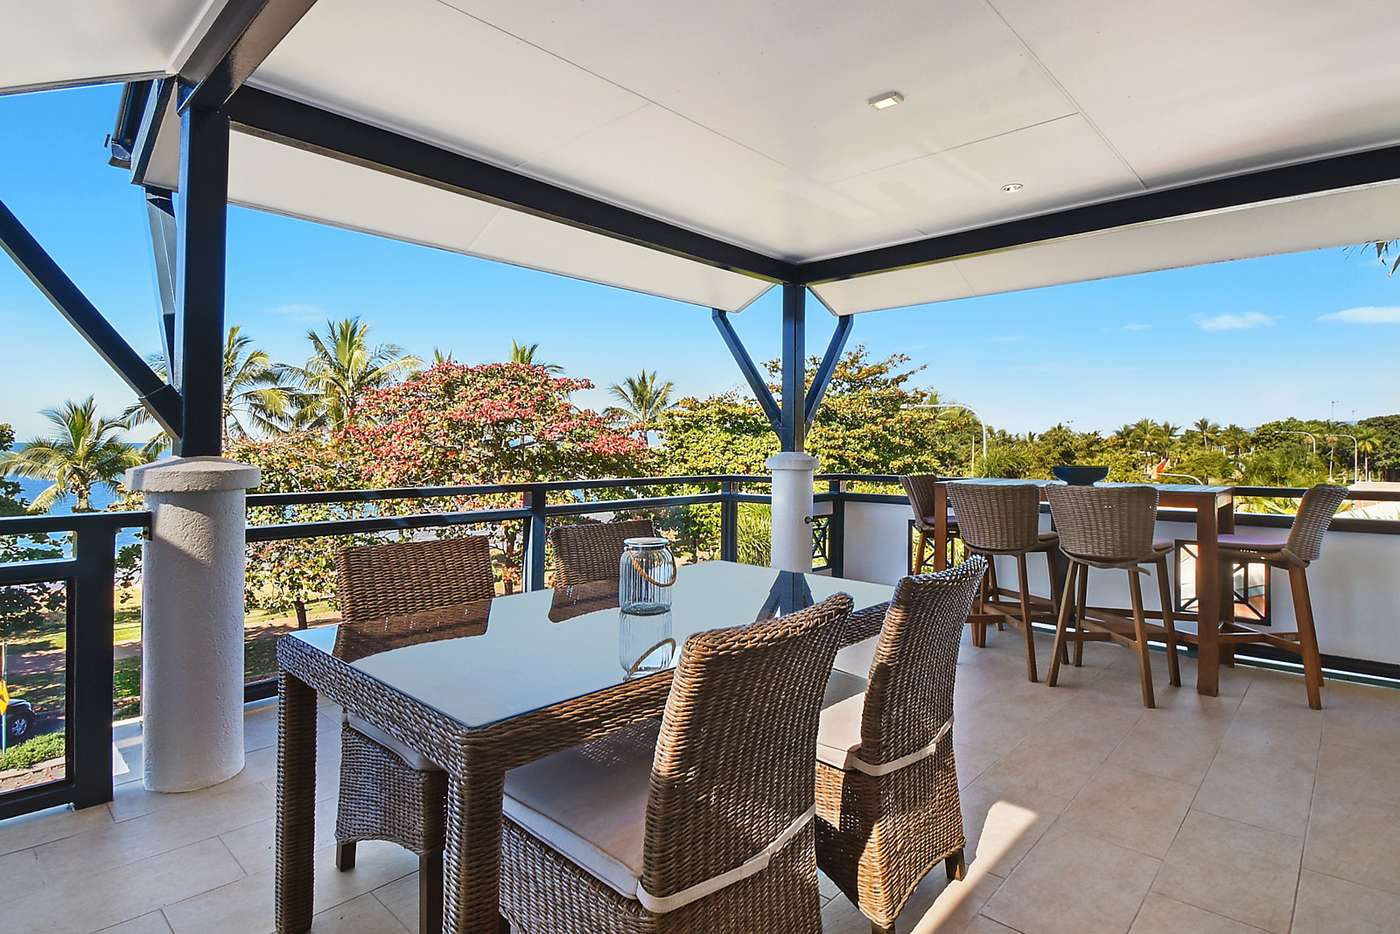 Main view of Homely apartment listing, 5/97 The Strand, North Ward QLD 4810